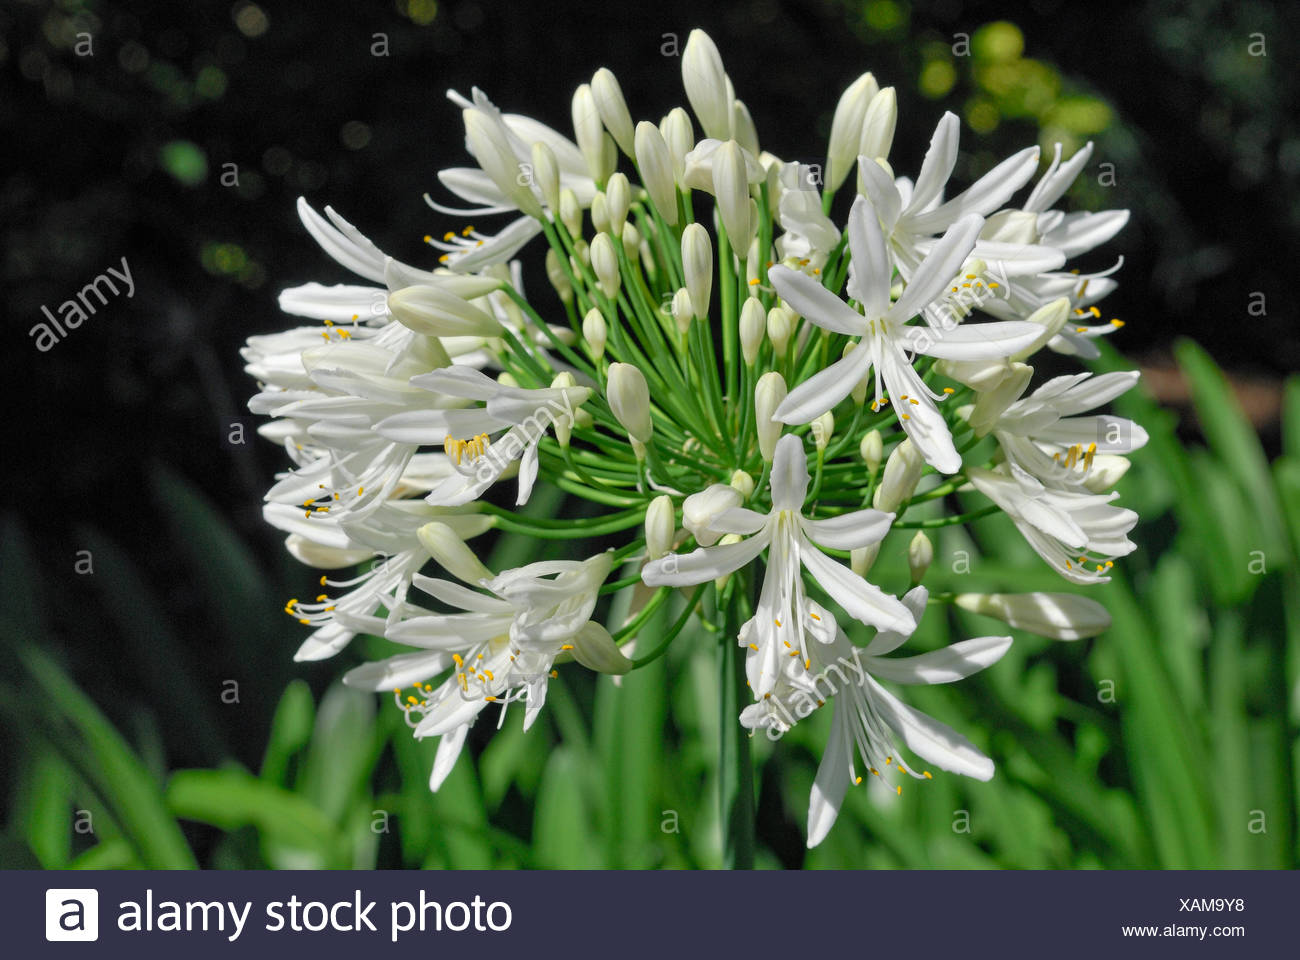 Lily of the nile agapanthus sp christchurch south island new lily of the nile agapanthus sp christchurch south island new zealand izmirmasajfo